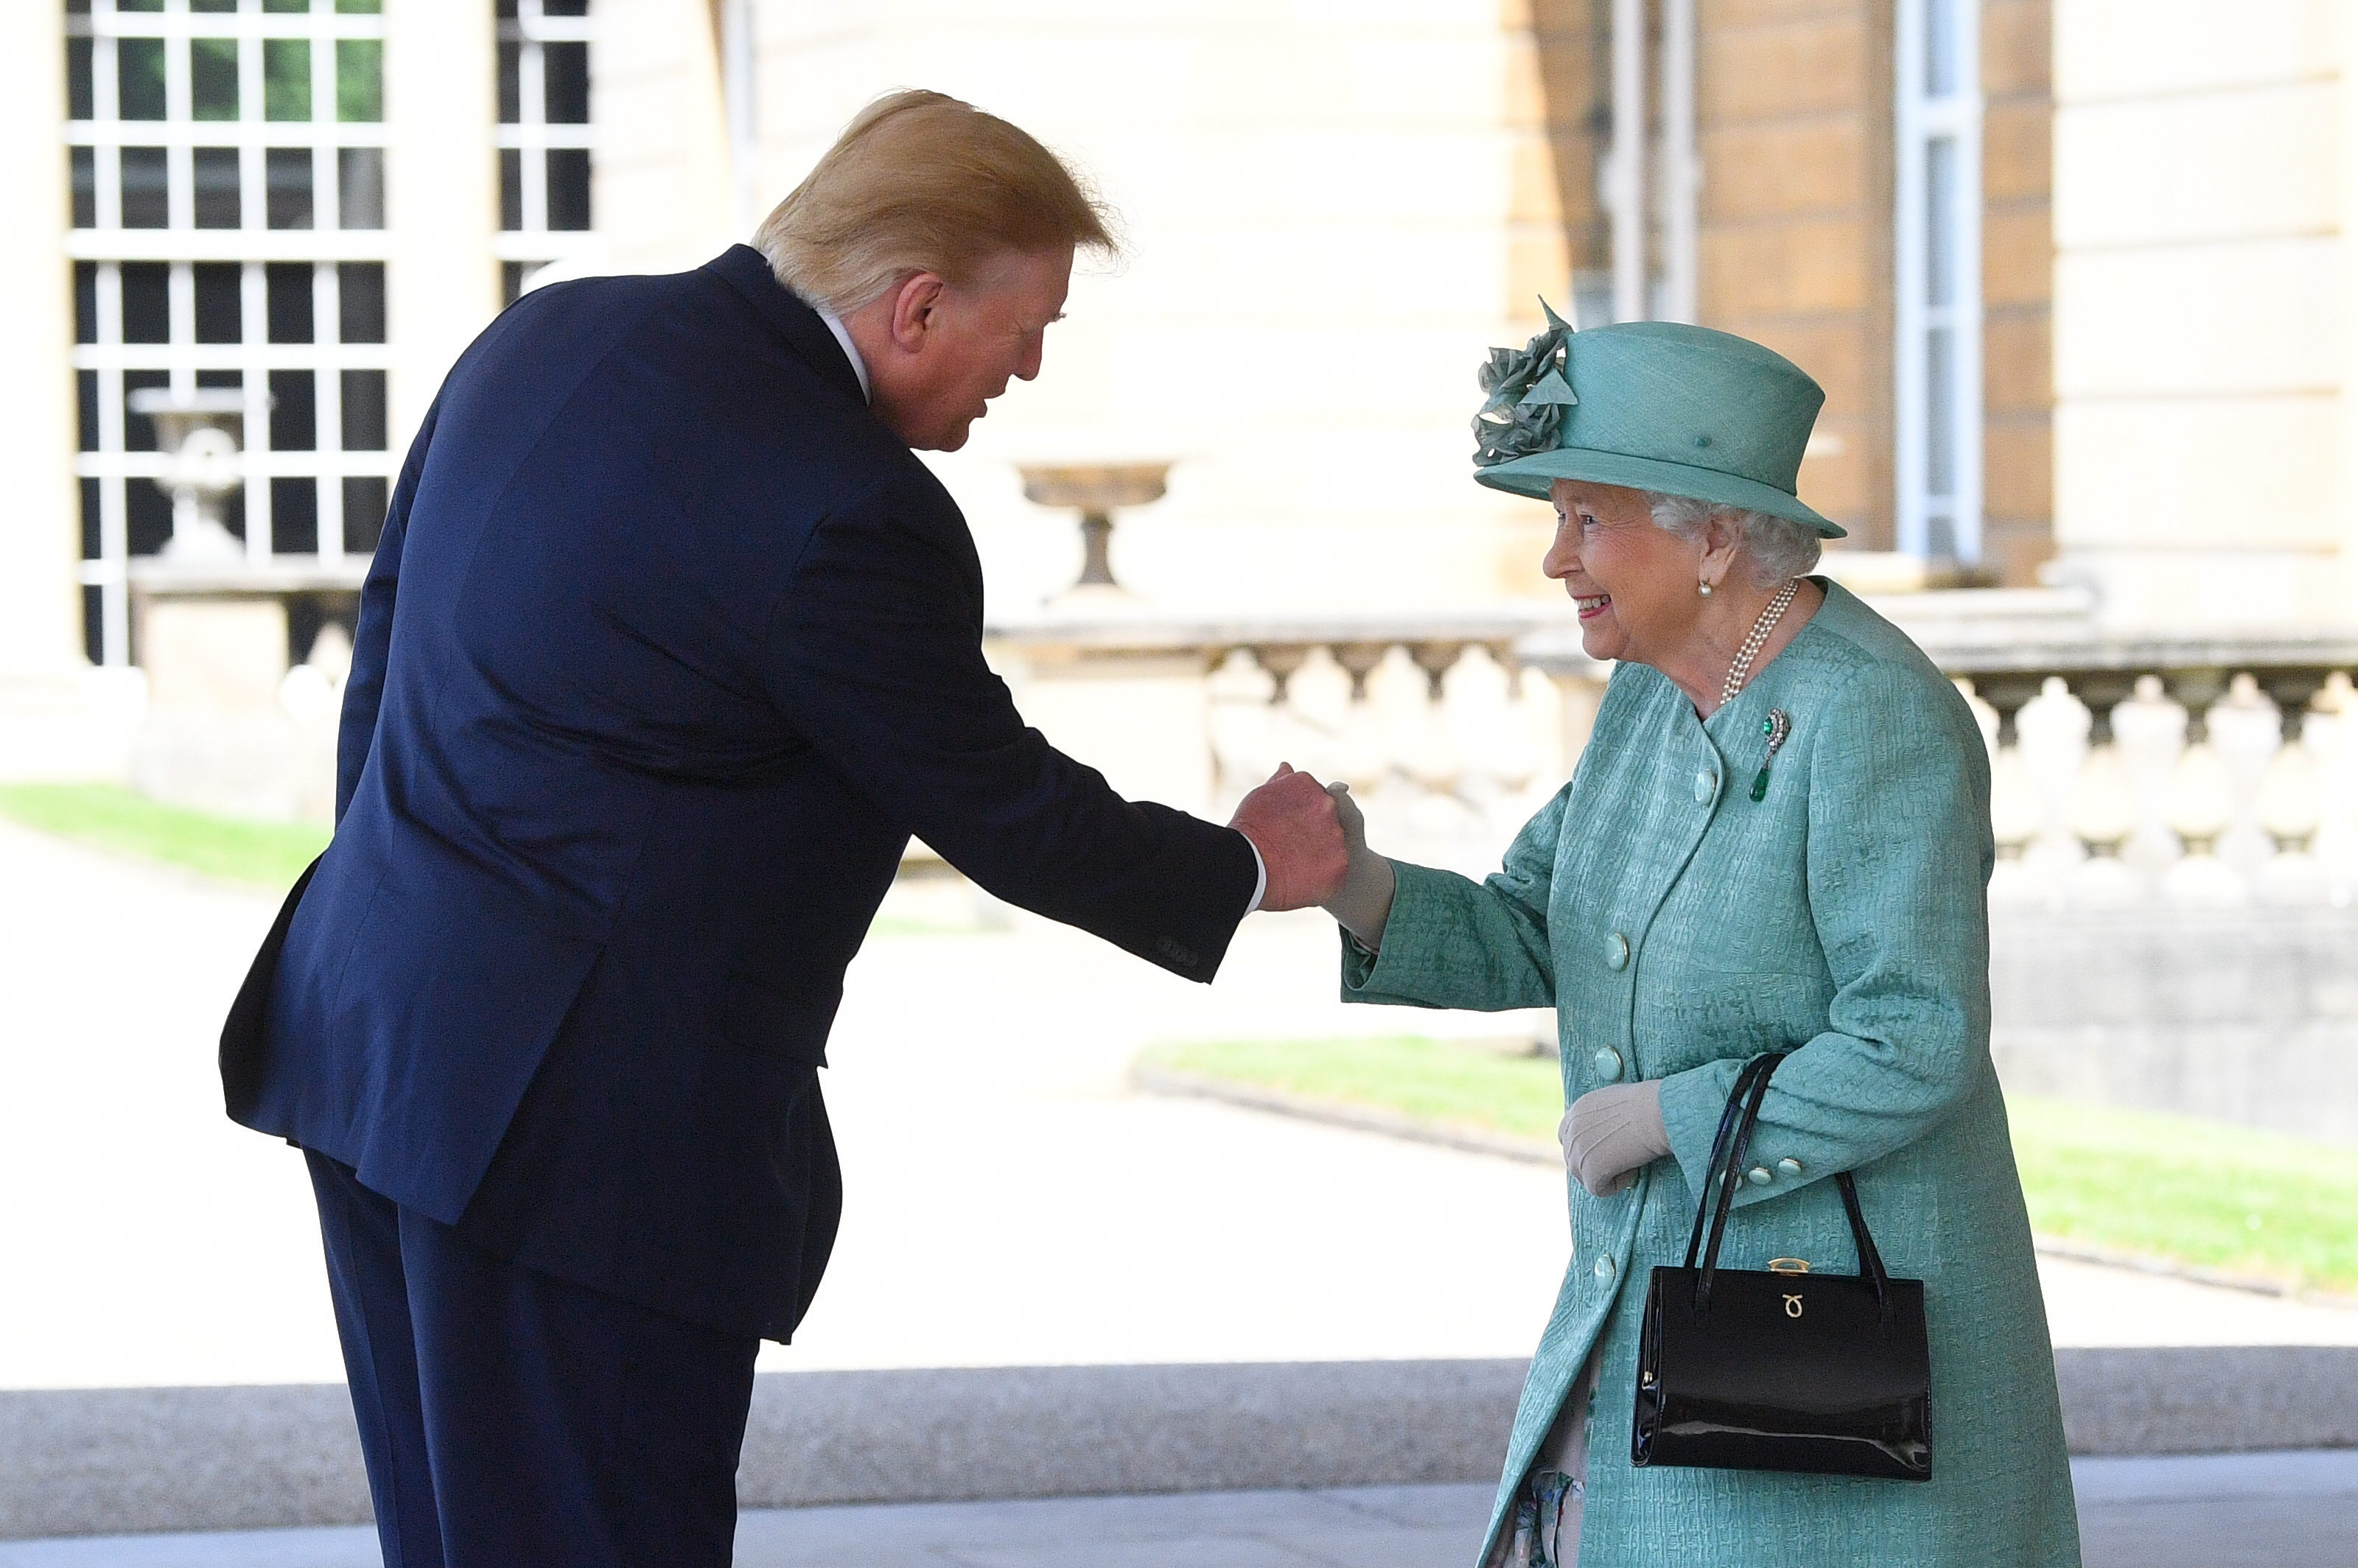 Mr Trump shakes hands with the Queen